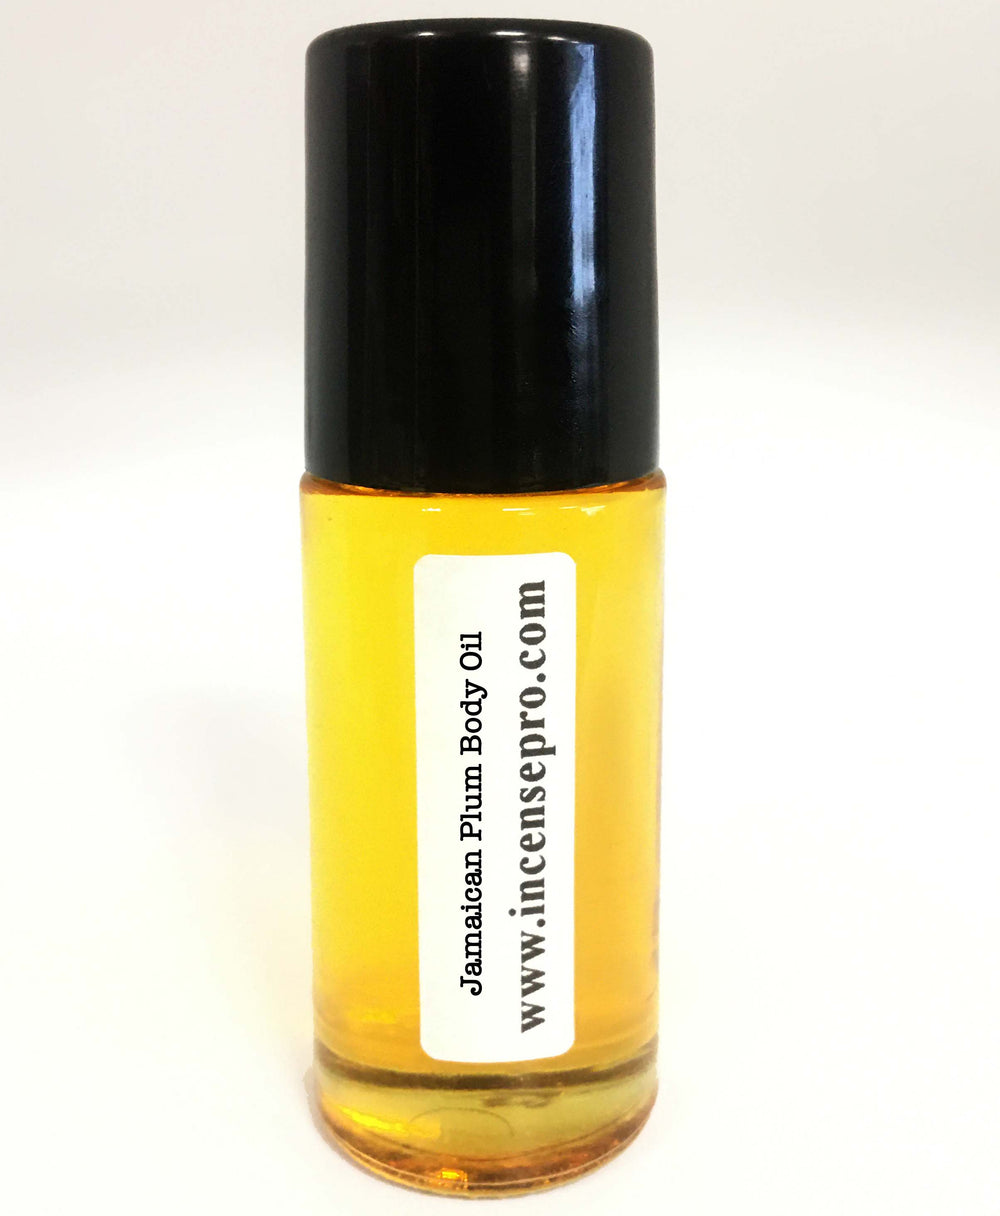 Buy Jamaican Plum Body Oil (Unisex)